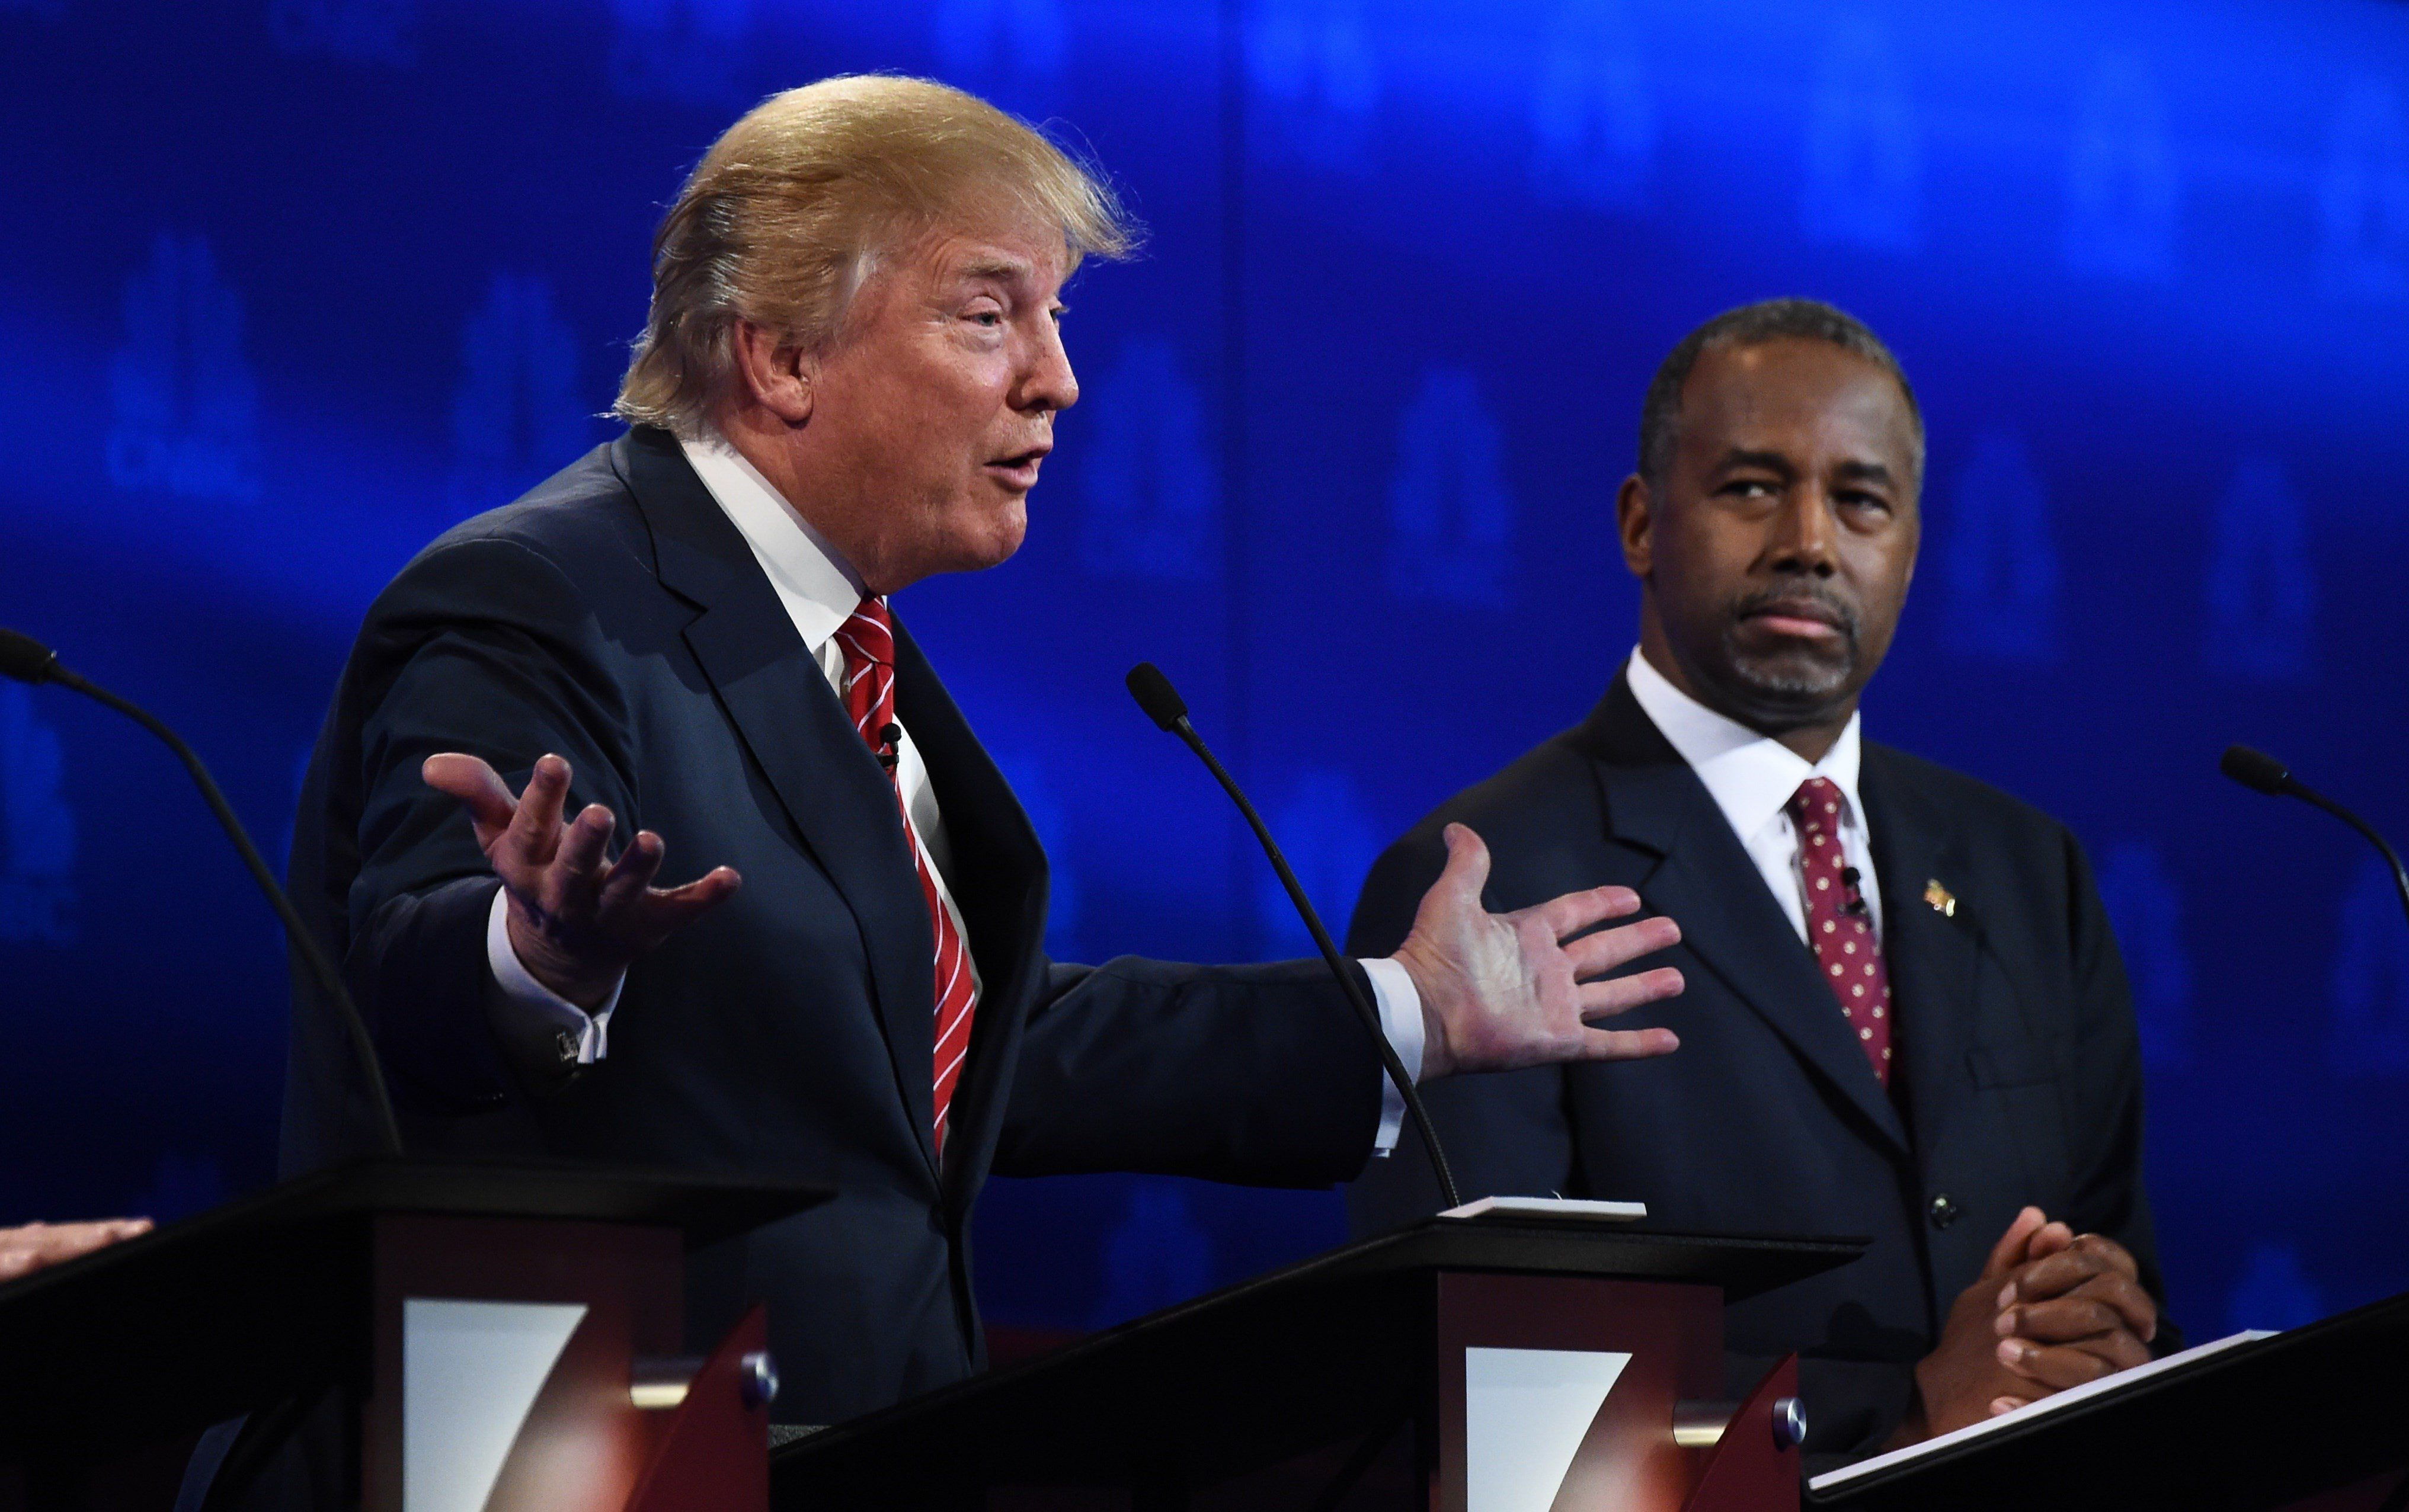 Republican presidential hopefuls Donald Trump and Ben Carson participate in the third Republican Presidential Debate, October 28, 2015 at the Coors Event Center at the University of Colorado in Boulder, Colorado.  AFP PHOTO / ROBYN BECK        (Photo credit should read ROBYN BECK/AFP/Getty Images)